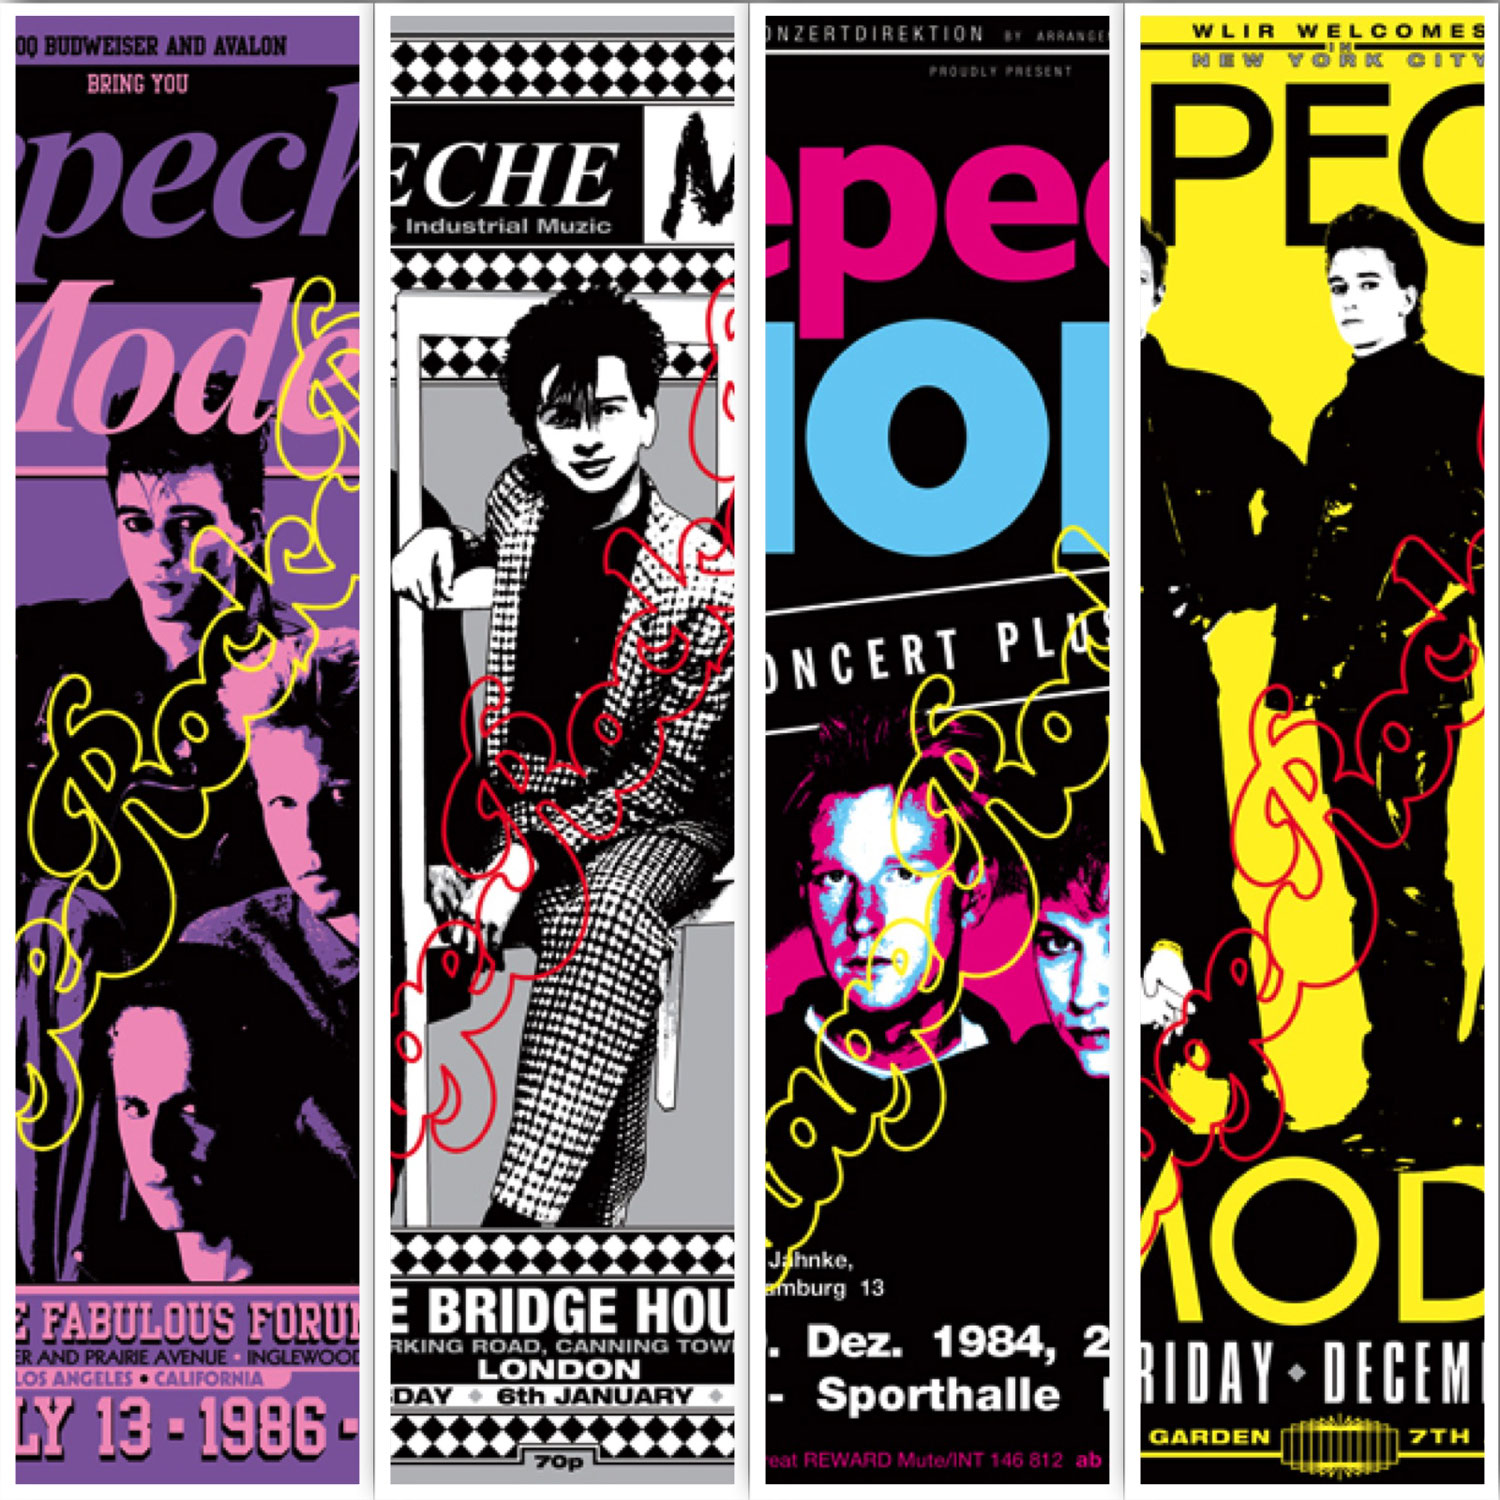 this week:  4 new posters about Depeche Mode